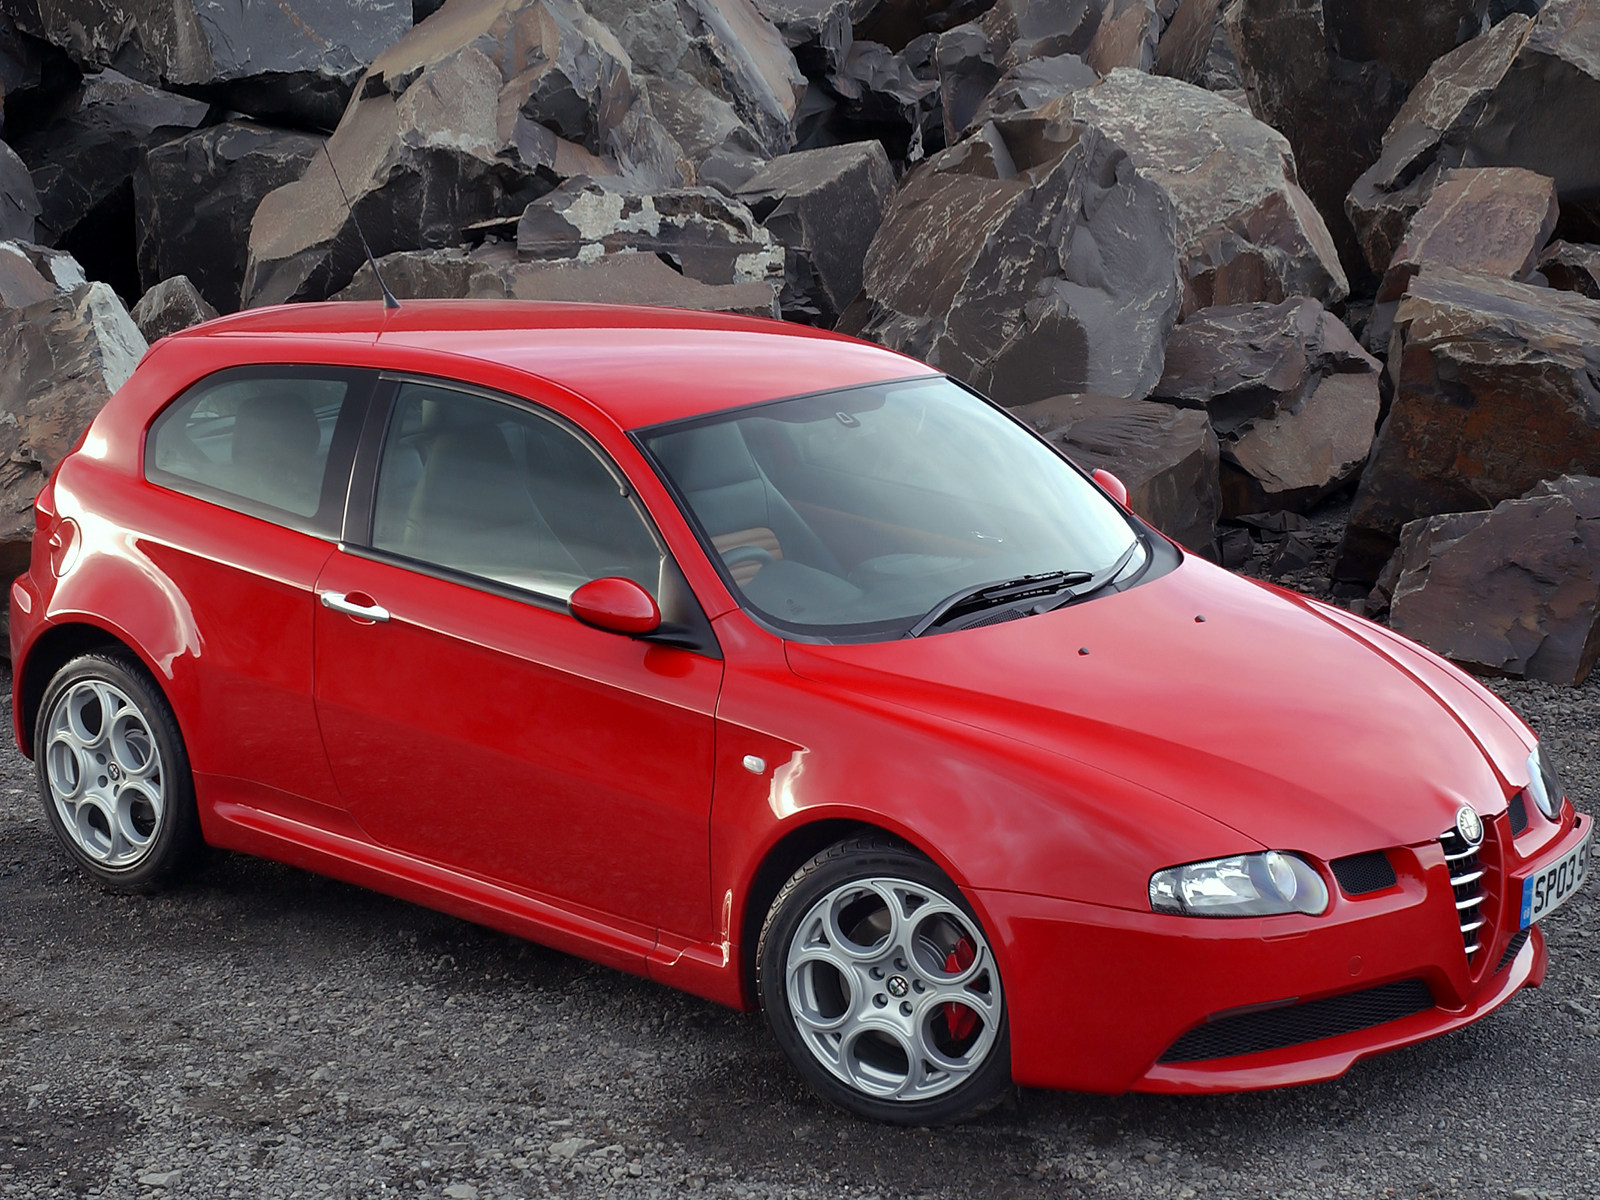 1600x1200 - Alfa Romeo 147 Wallpapers 30